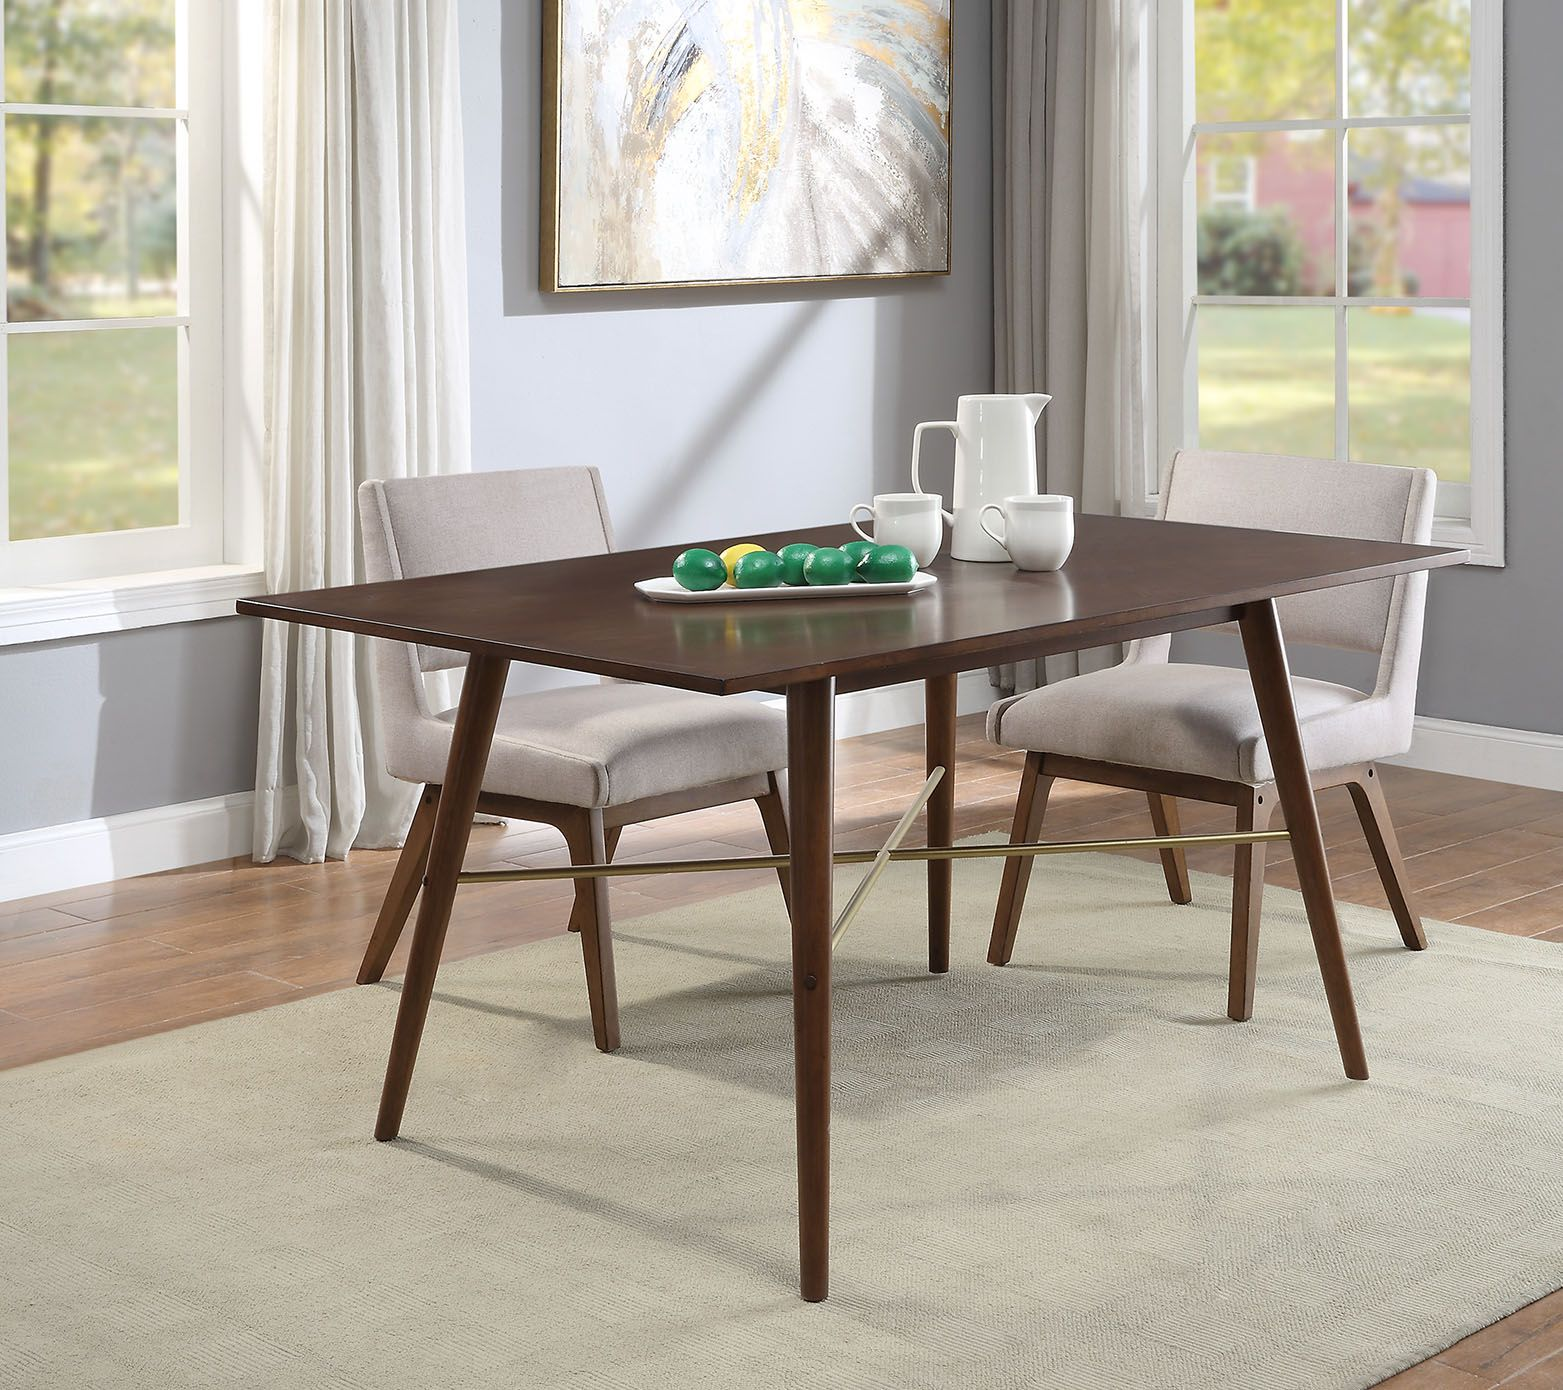 Better Homes Gardens Elizabeth Dining Table Walmart Com